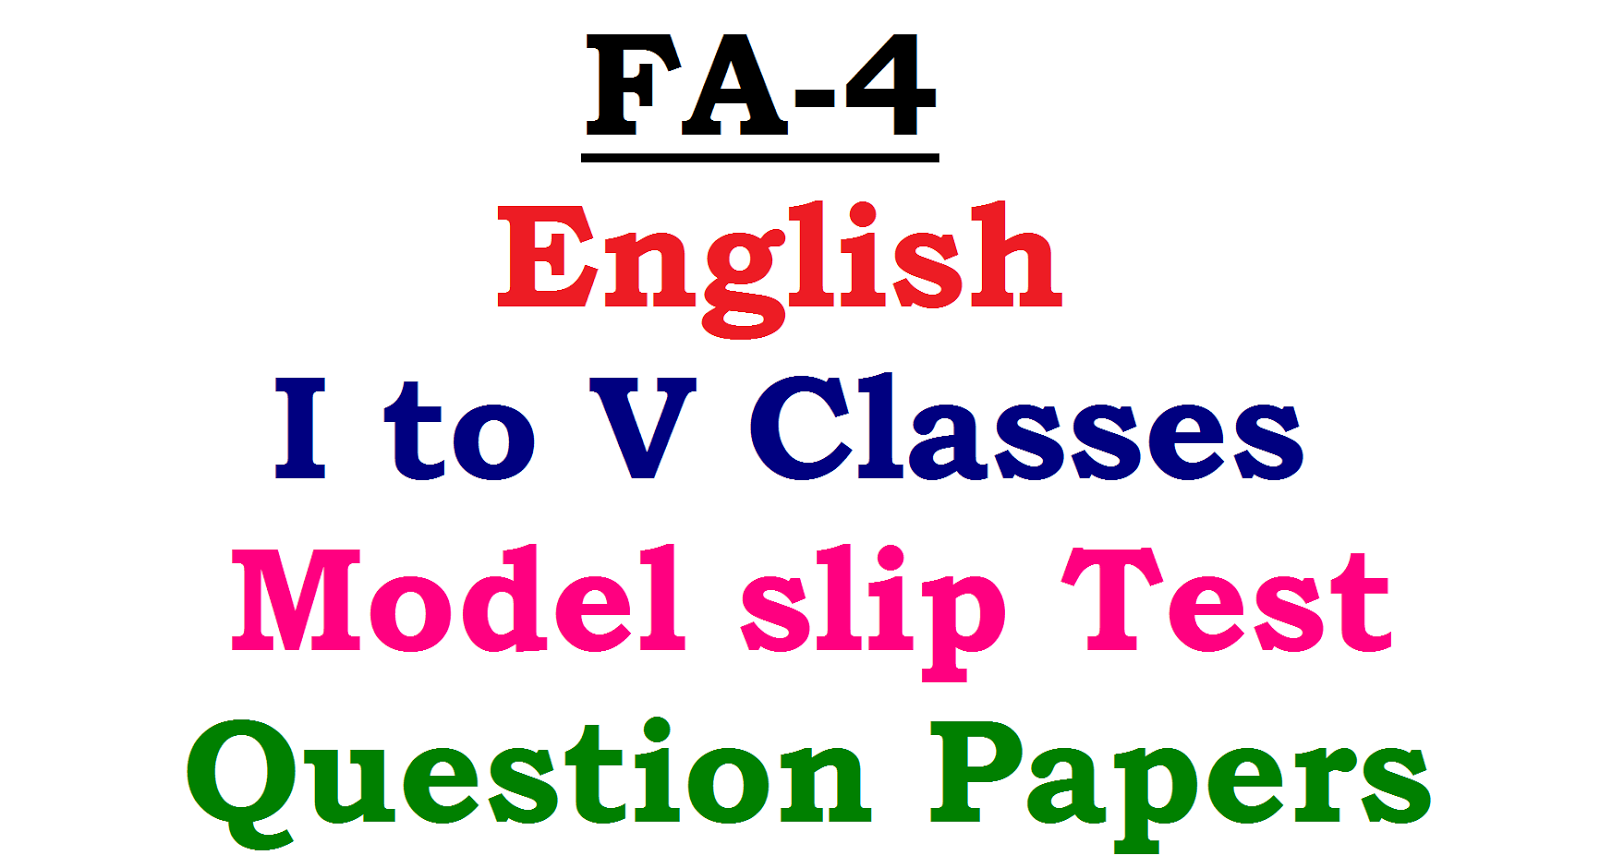 Class 1-5 English FA-4 Model Slip Test Question Papers ~ IIIT